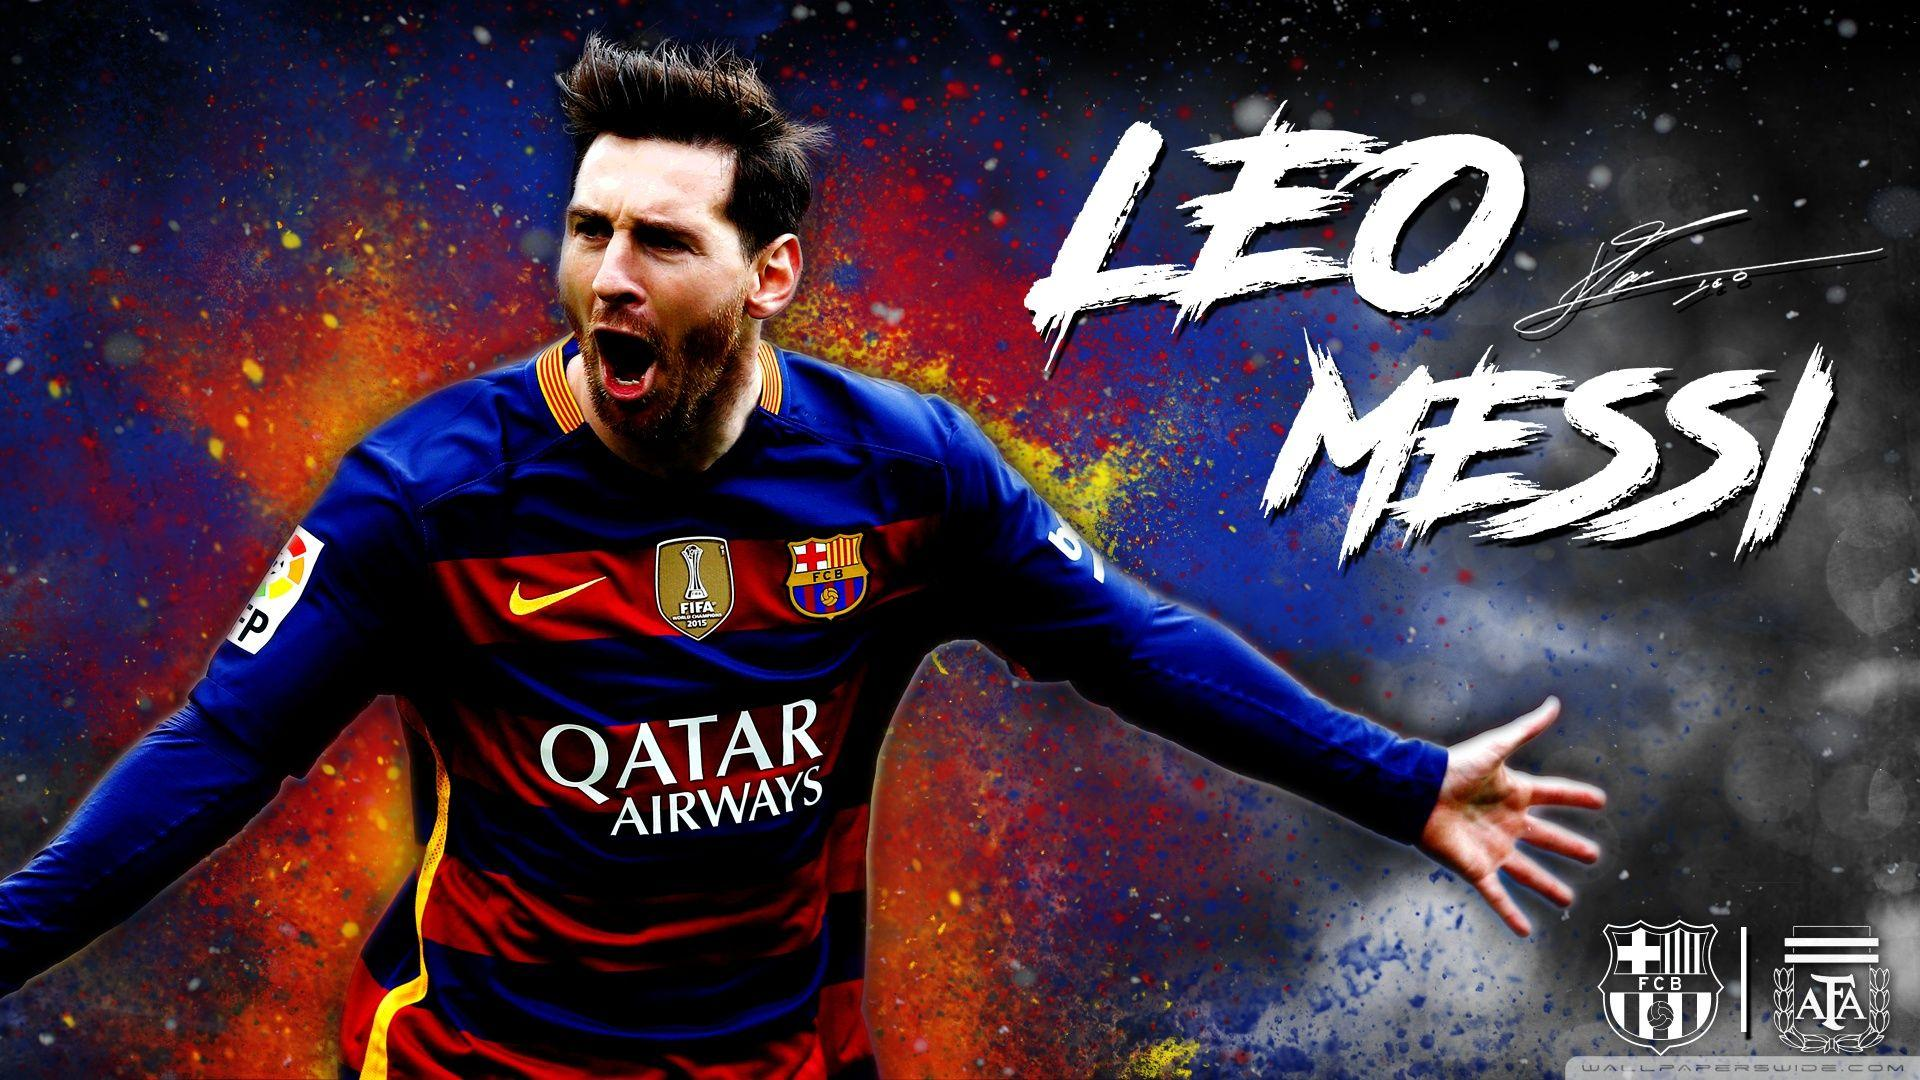 Messi Barcelona Wallpapers Wallpaper Cave